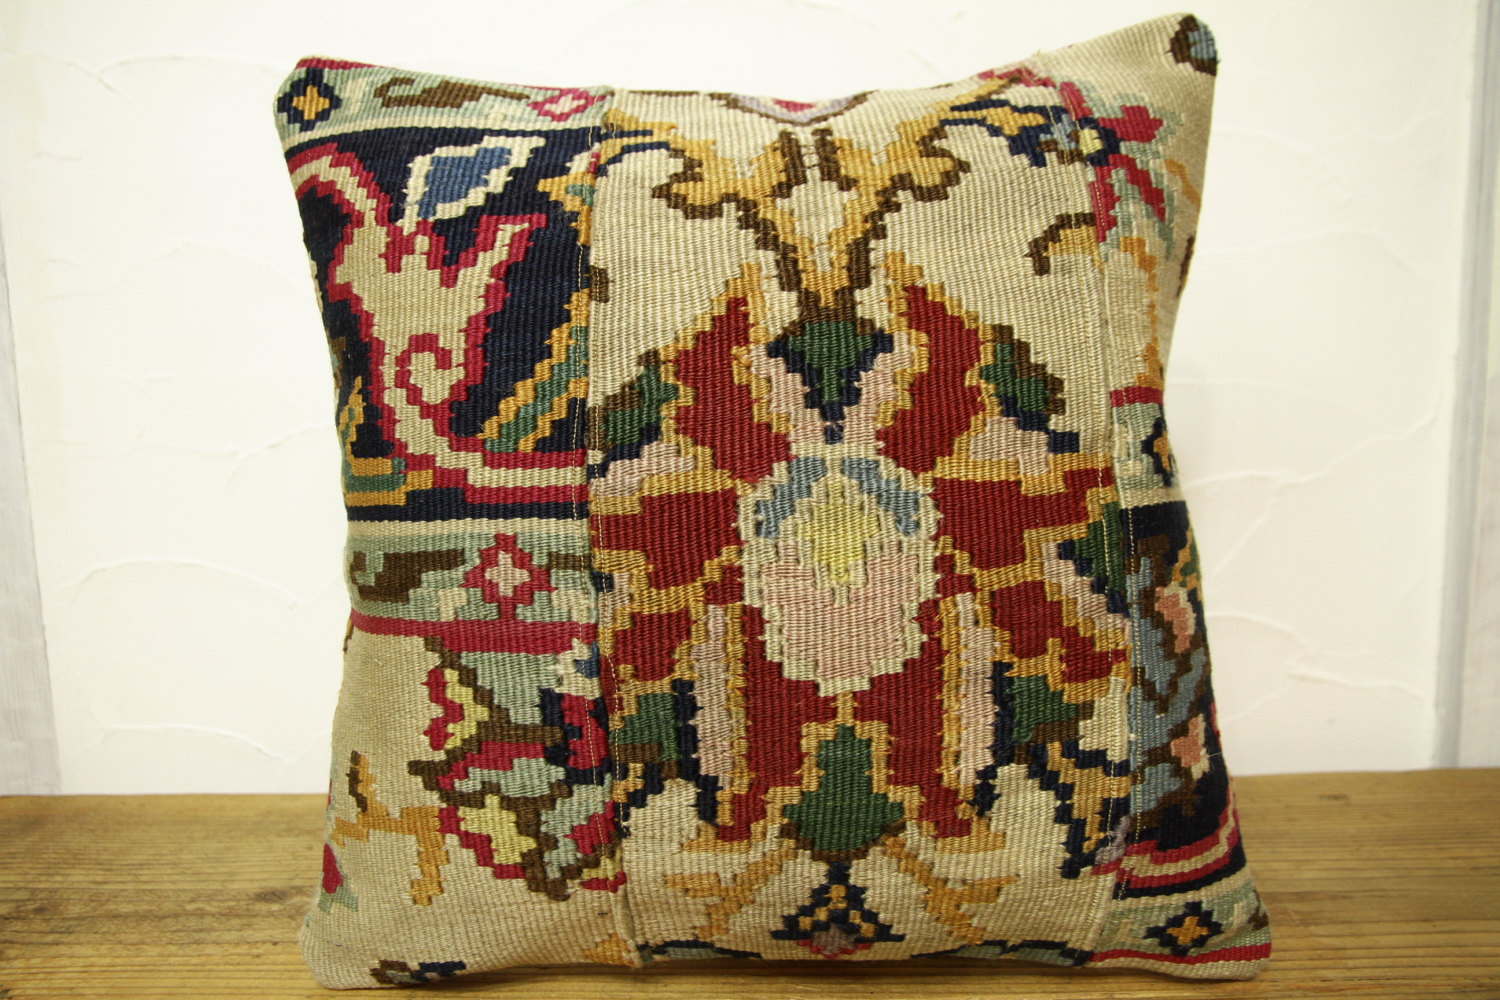 Kilim Pillows |16x16 | Decorative Pillows | 428 | Accent Pillows turkish pillow